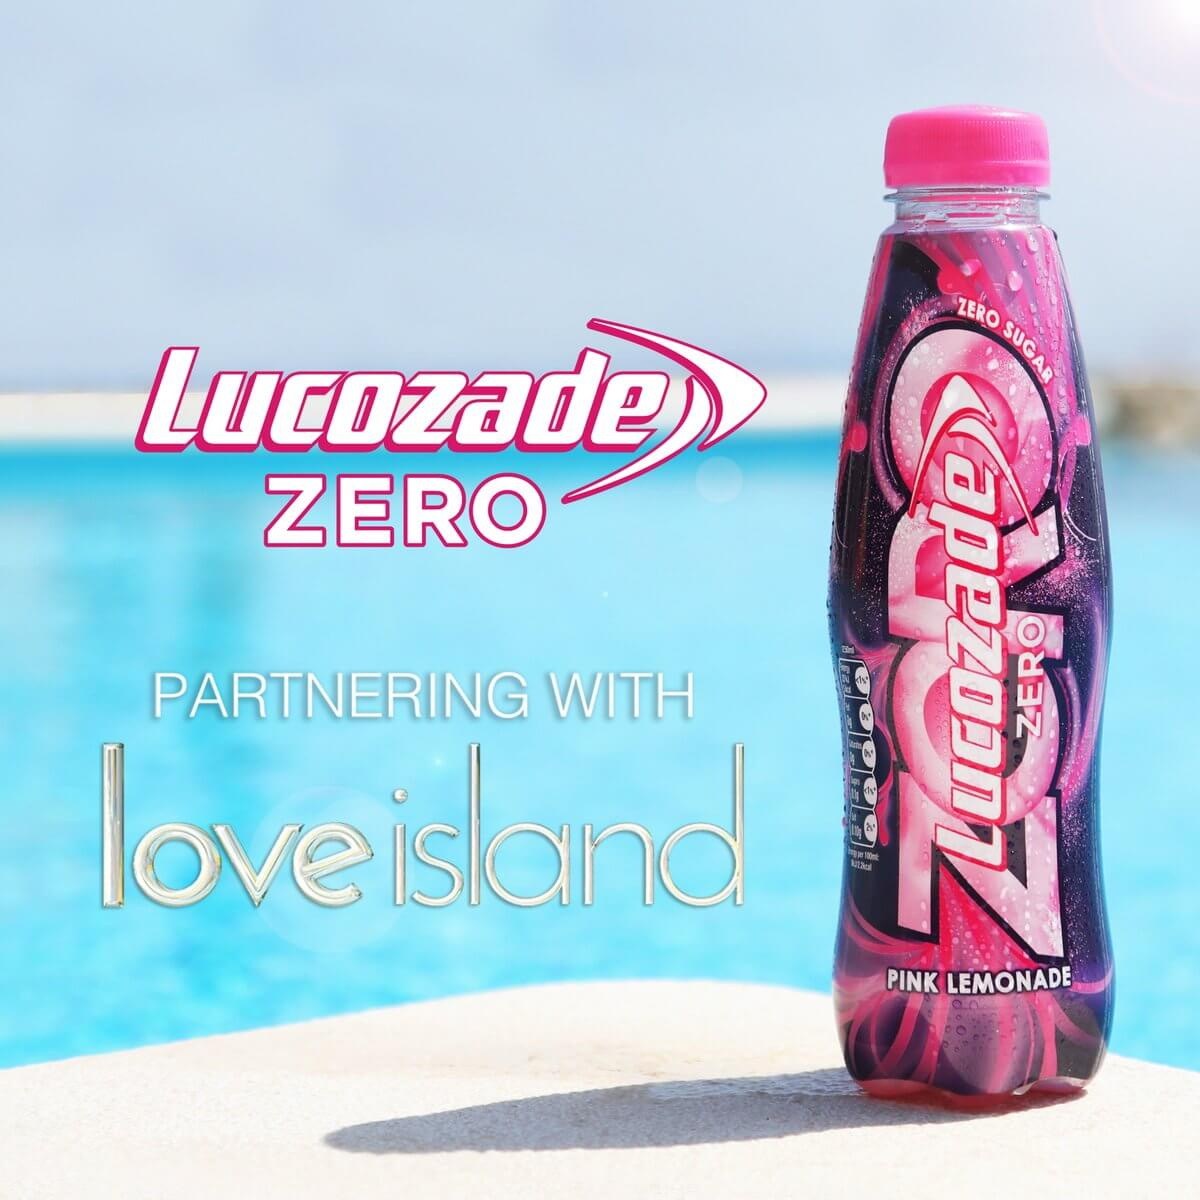 lucozade zero partnering with love island